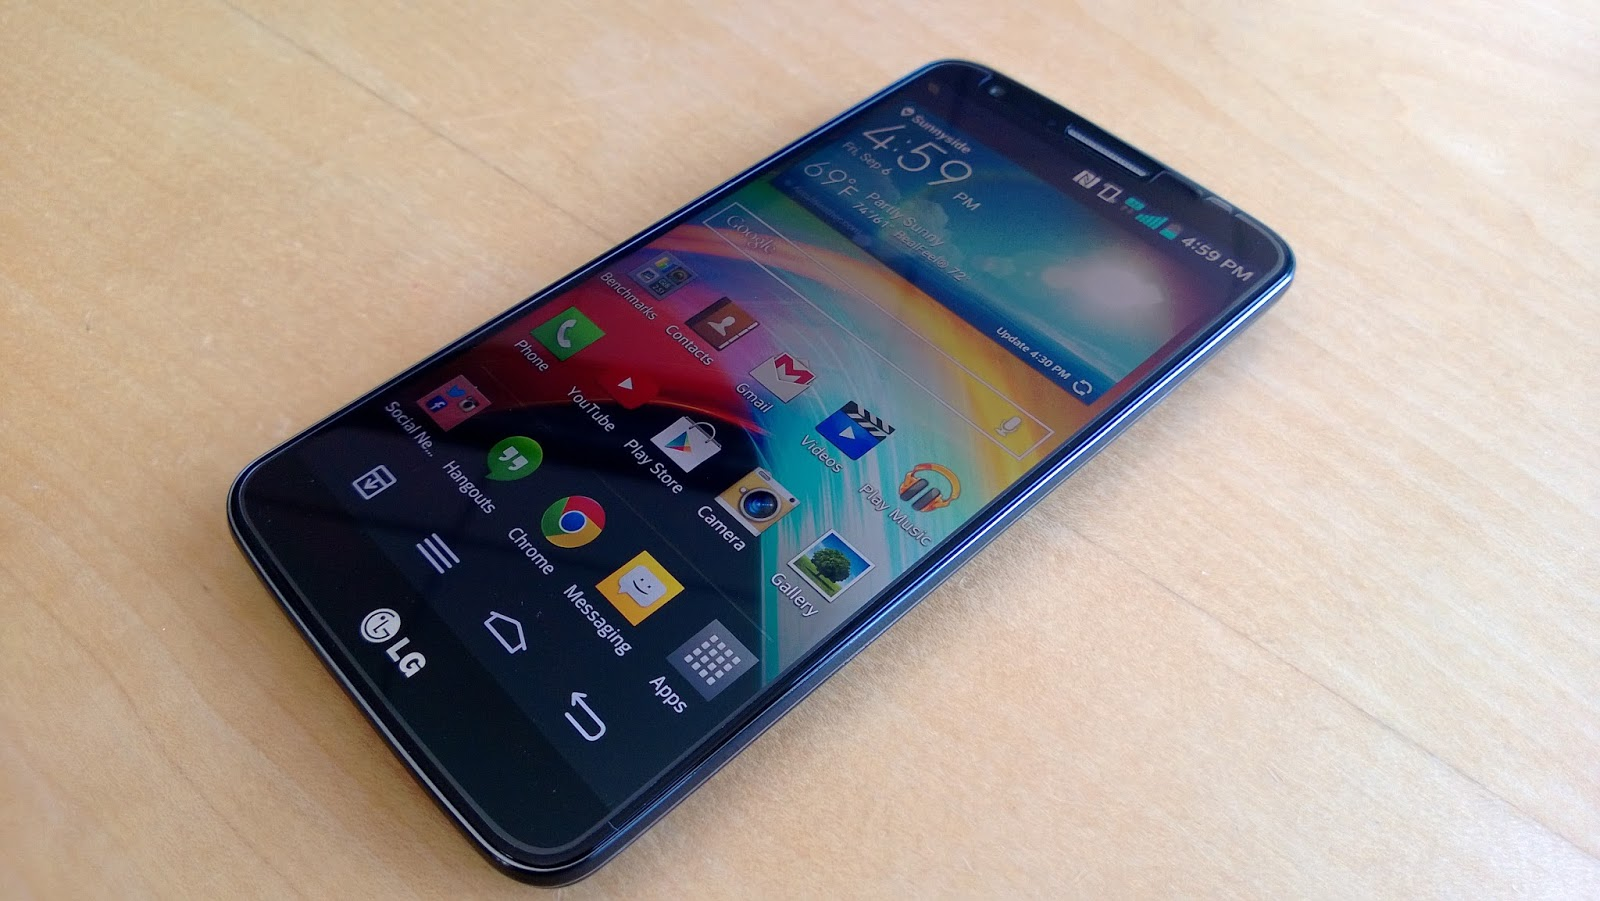 How To Update Verizon LG G2 With Official Nightly CM13